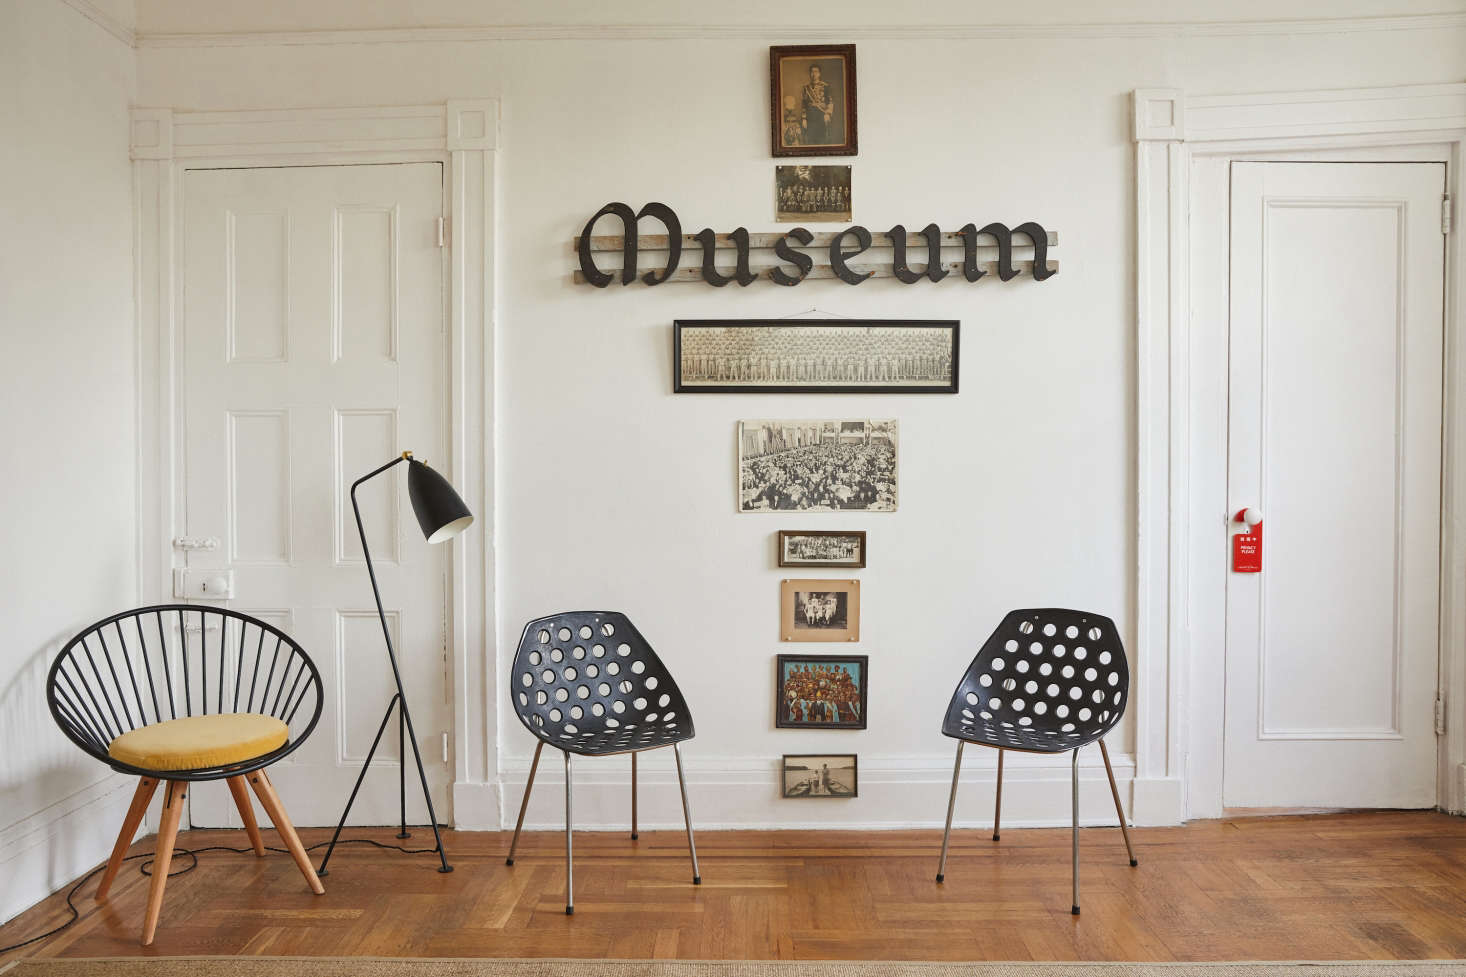 """Mounted on the wall is a museum sign Valentin got from a friend, conceptual artist Cyril Duval of Item Idem. The photos below are all group photos taken from the 1930s to 1960s collected, he says, """"from past lives in Paris, Tokyo, London, and Los Angeles."""" In front is theBogus Studio Circle Chair, aGreta GrossmanGrässhoppa Floor Lamp for Gubi, and two 1960sCoquillage Chairs by Pierre Guariche for Meurop."""